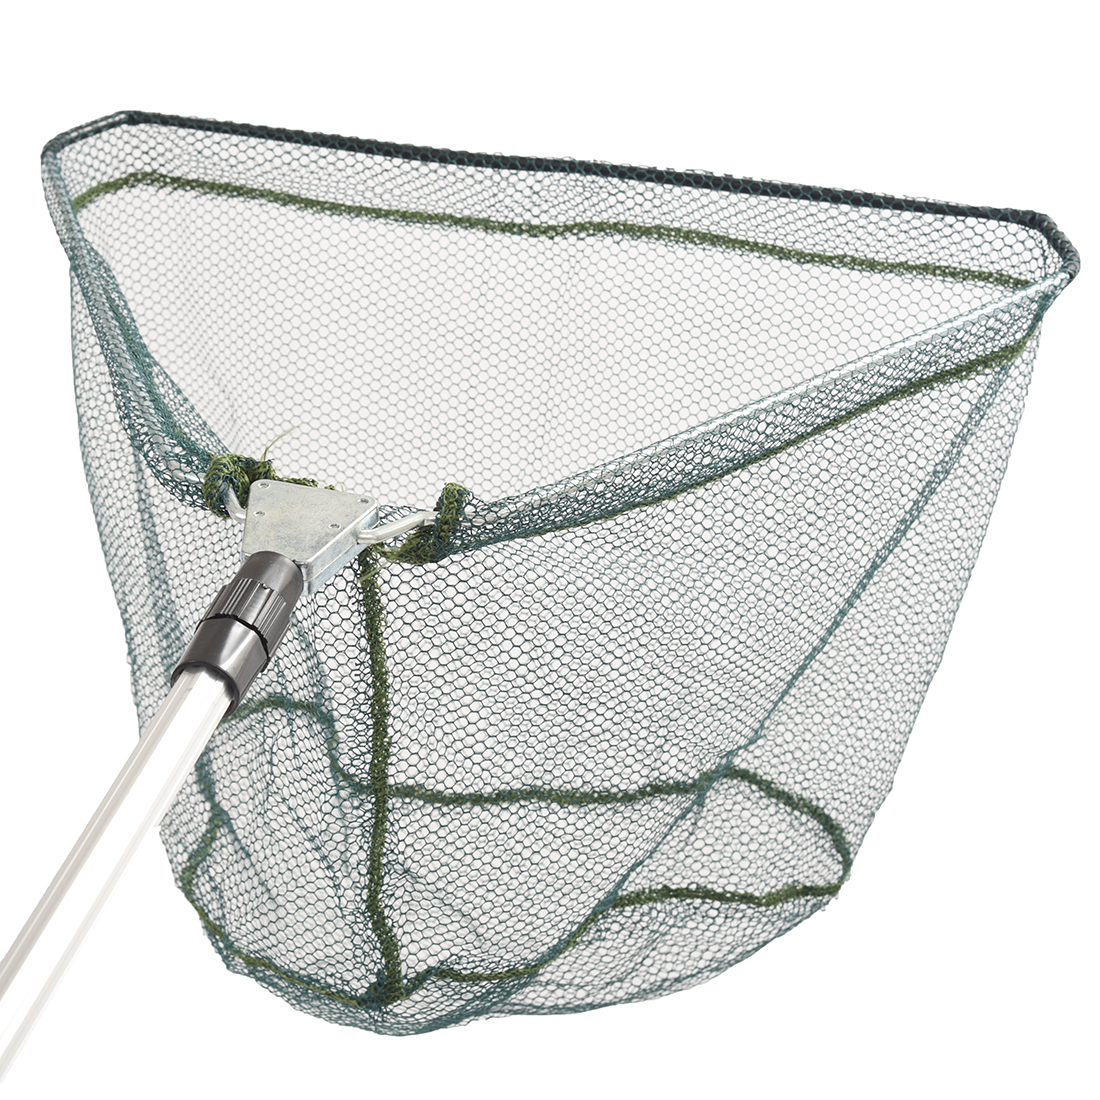 Triangular Folding Fishing Landing Net Aluminum 3 Section Extending Pole Handle green аксессуар sp section pole 53110